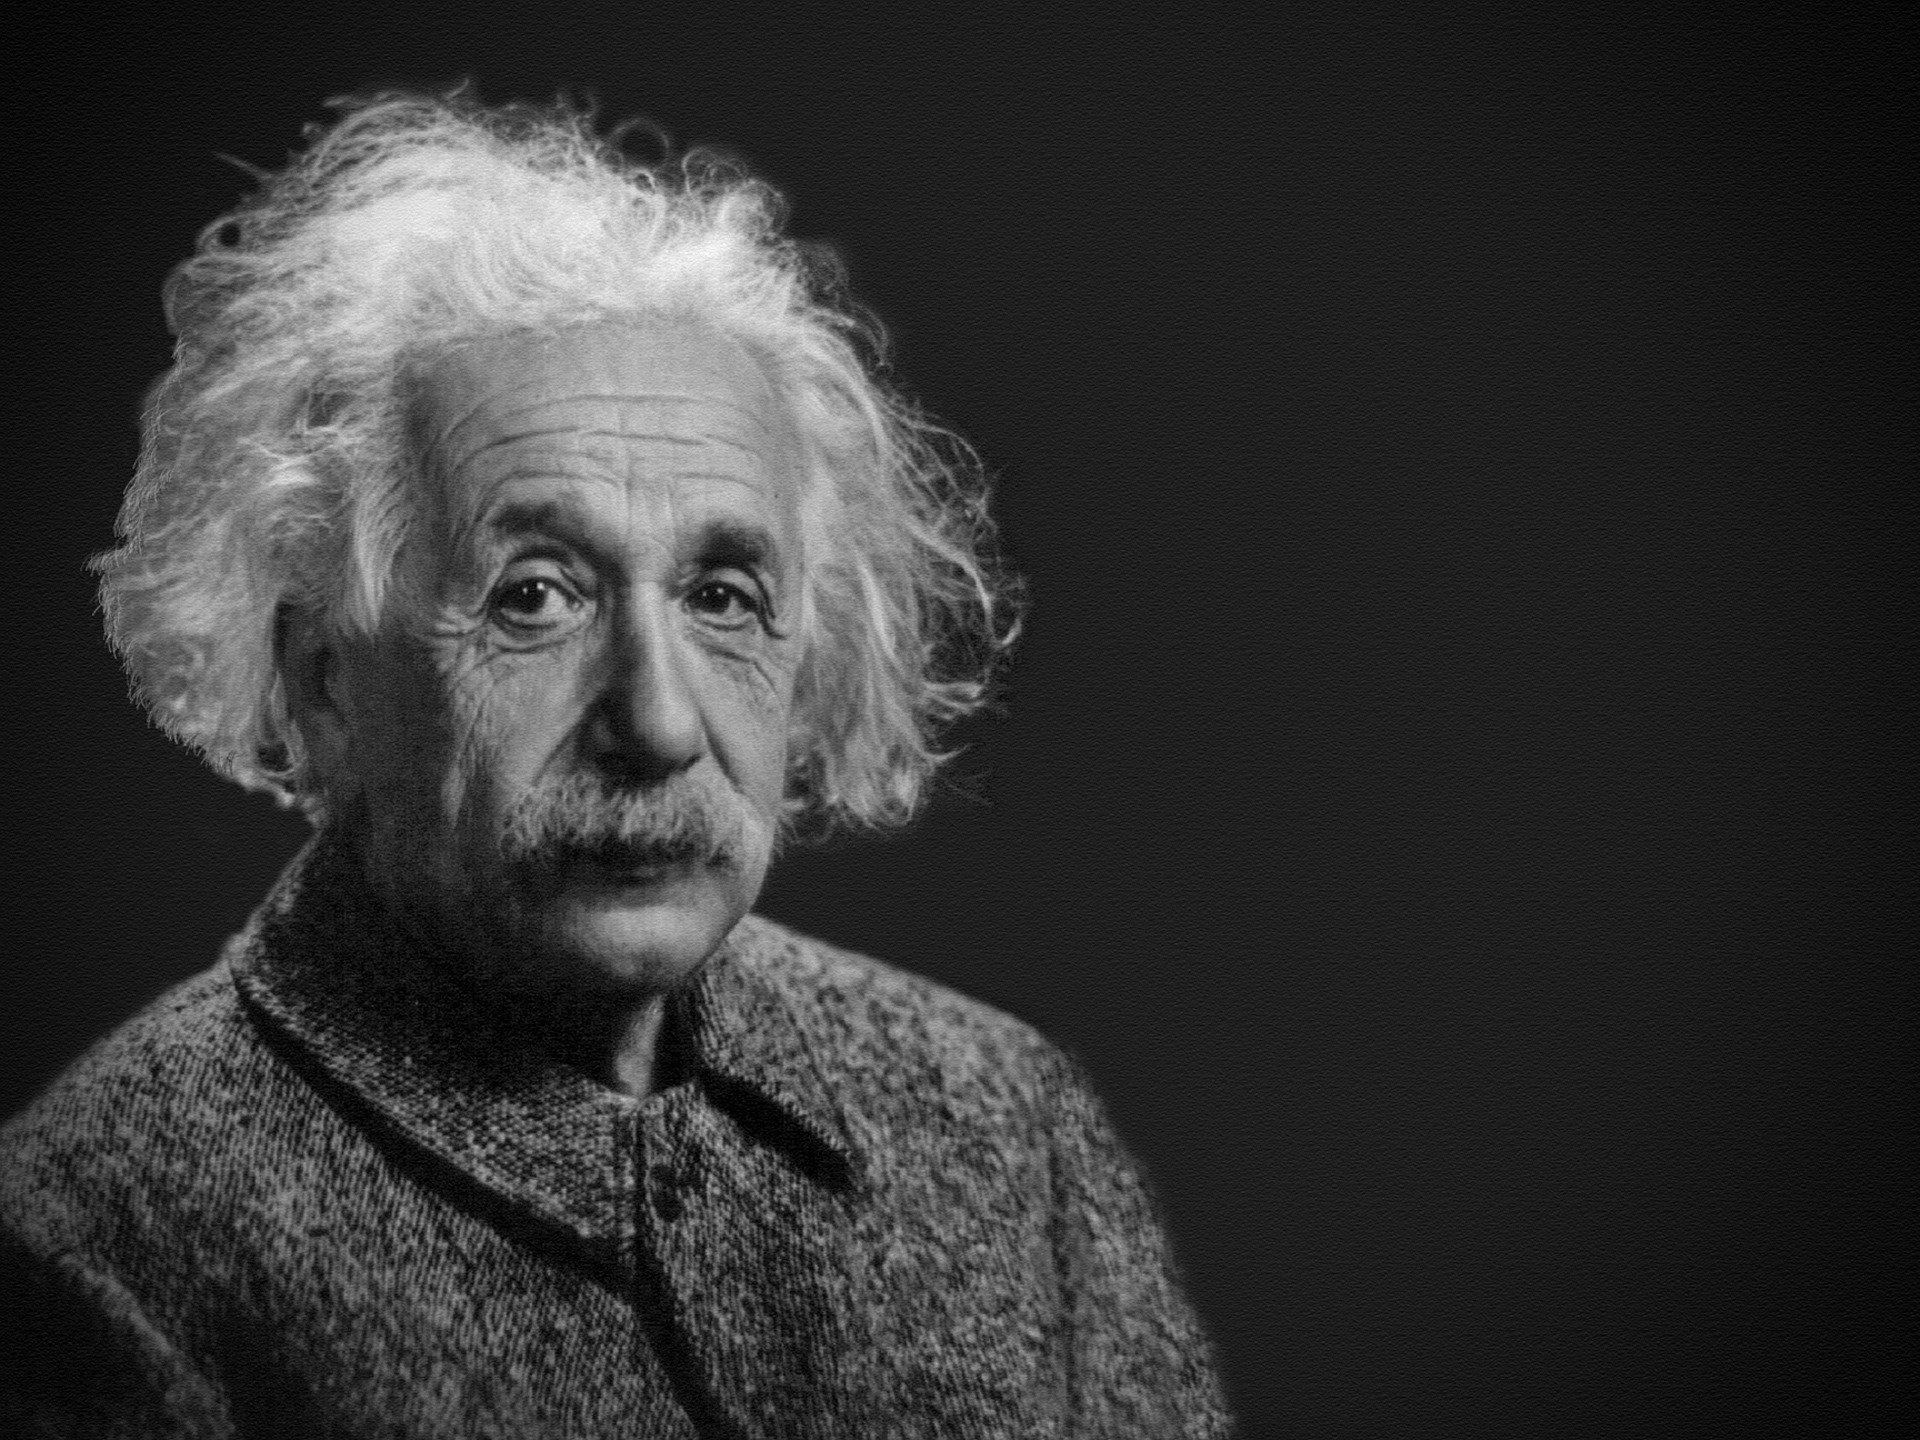 Black and white image of Albert Einstein